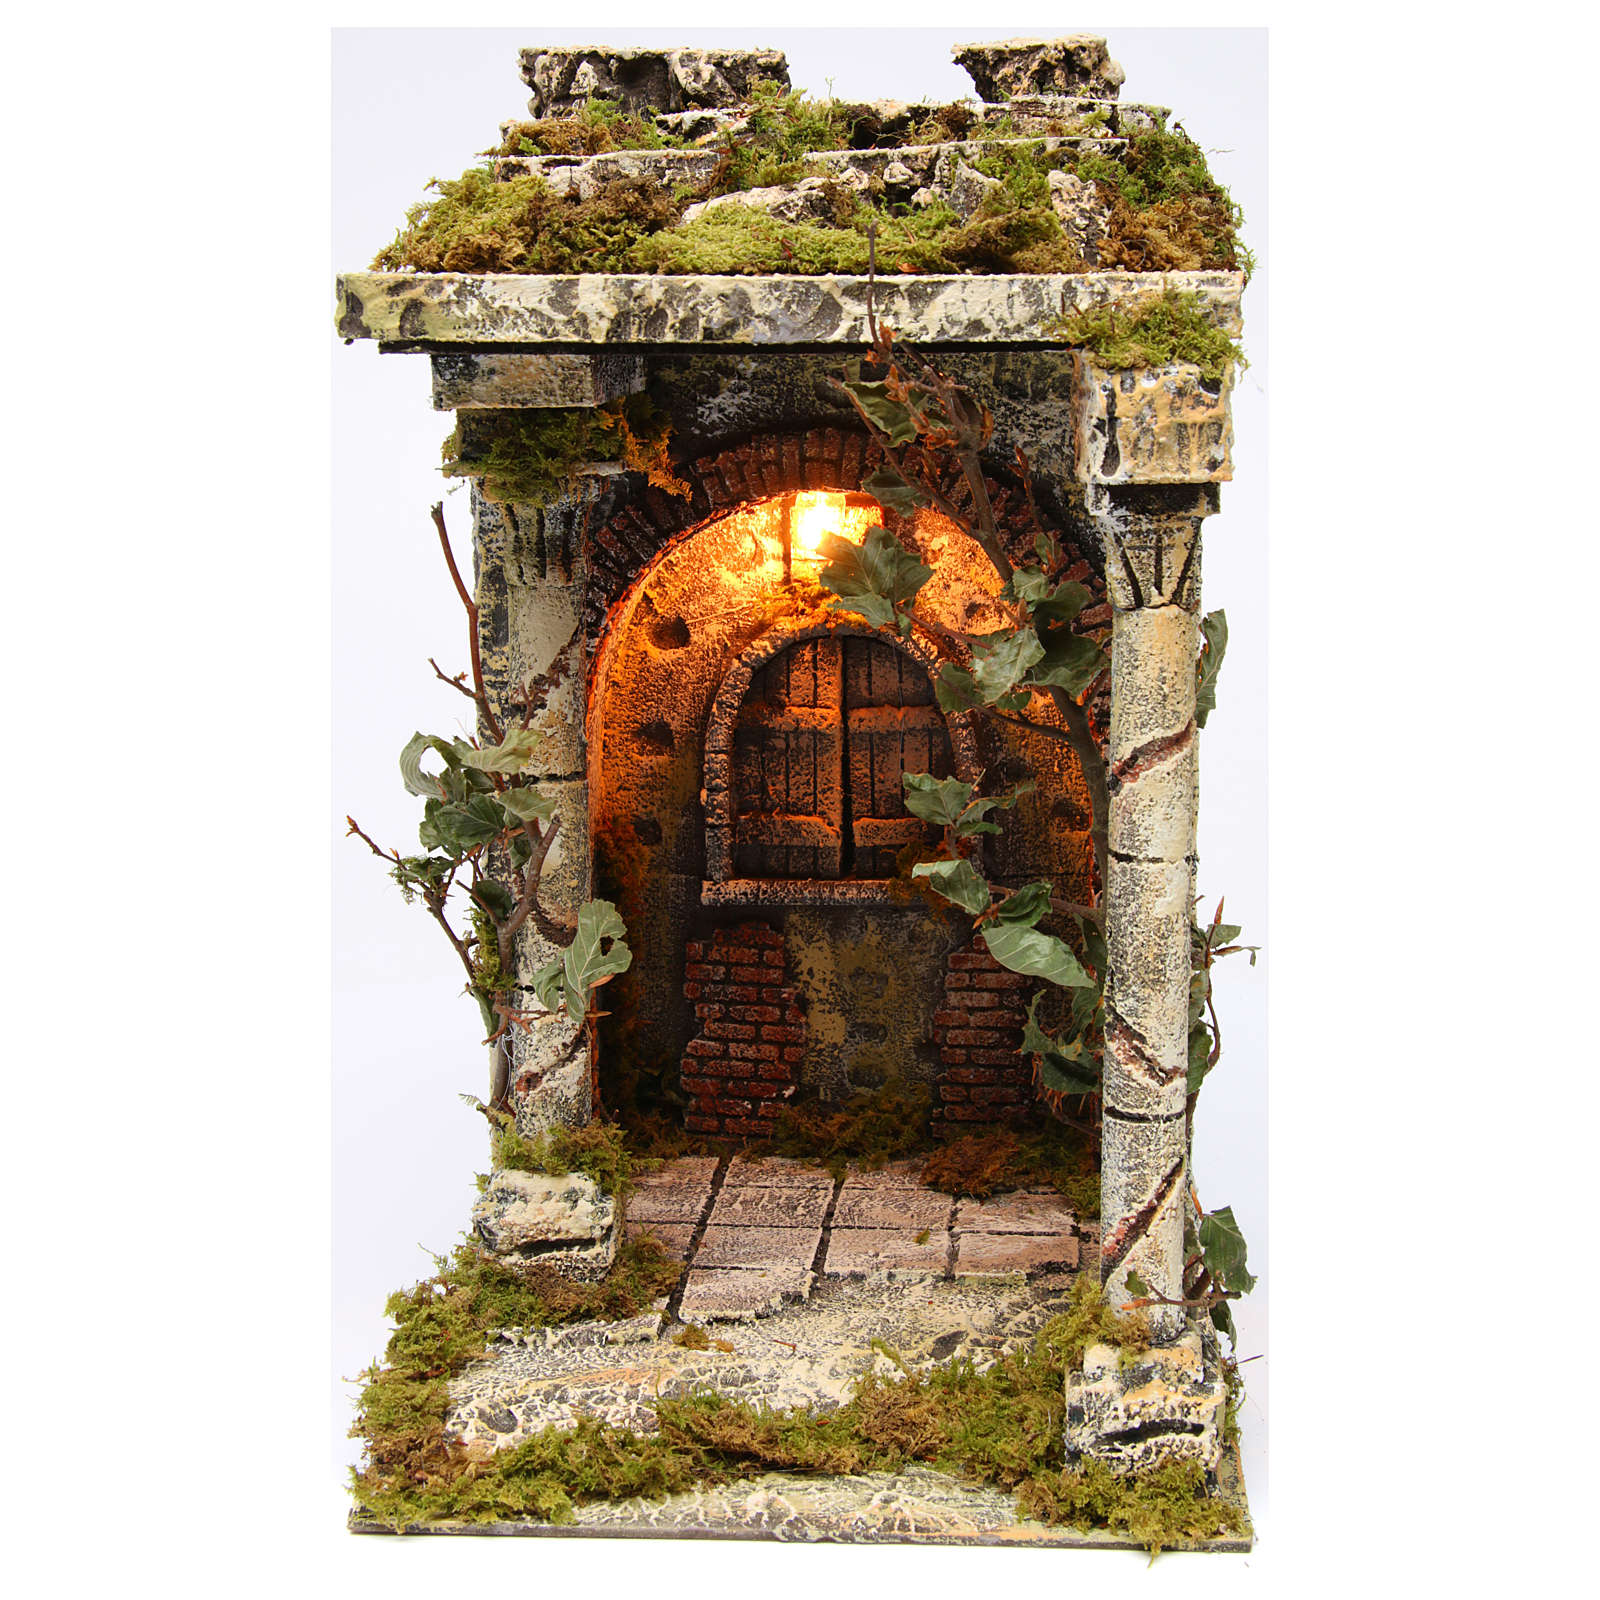 Rural temple with pillars for Neapolitan Nativity scene 40x30x35 cm 4